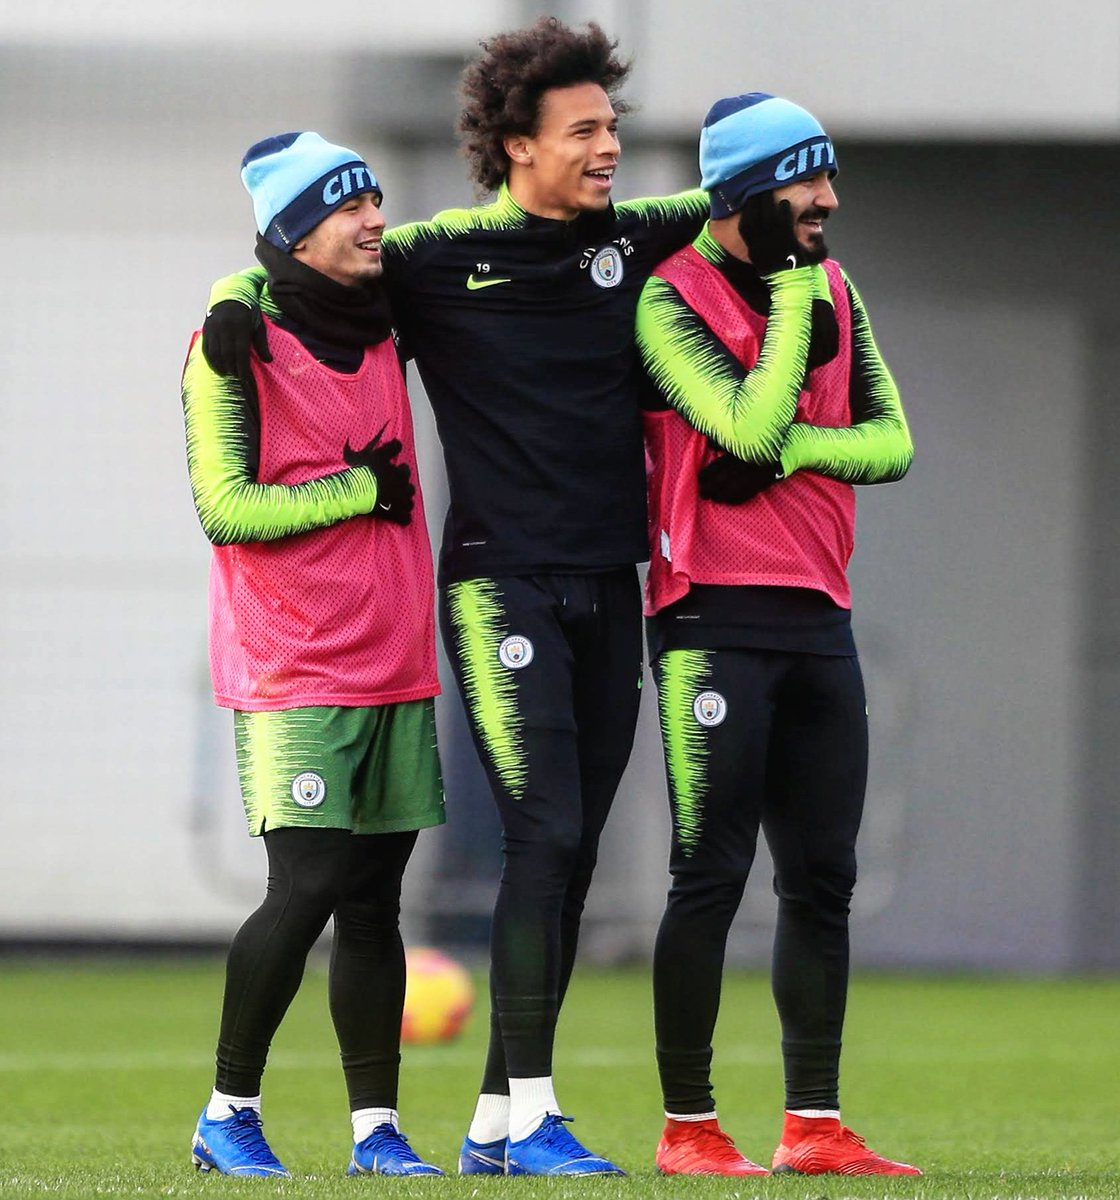 Let's get back on track 2morrow 🔥⚽🔥 #together #inSané #LS19 @ManCity